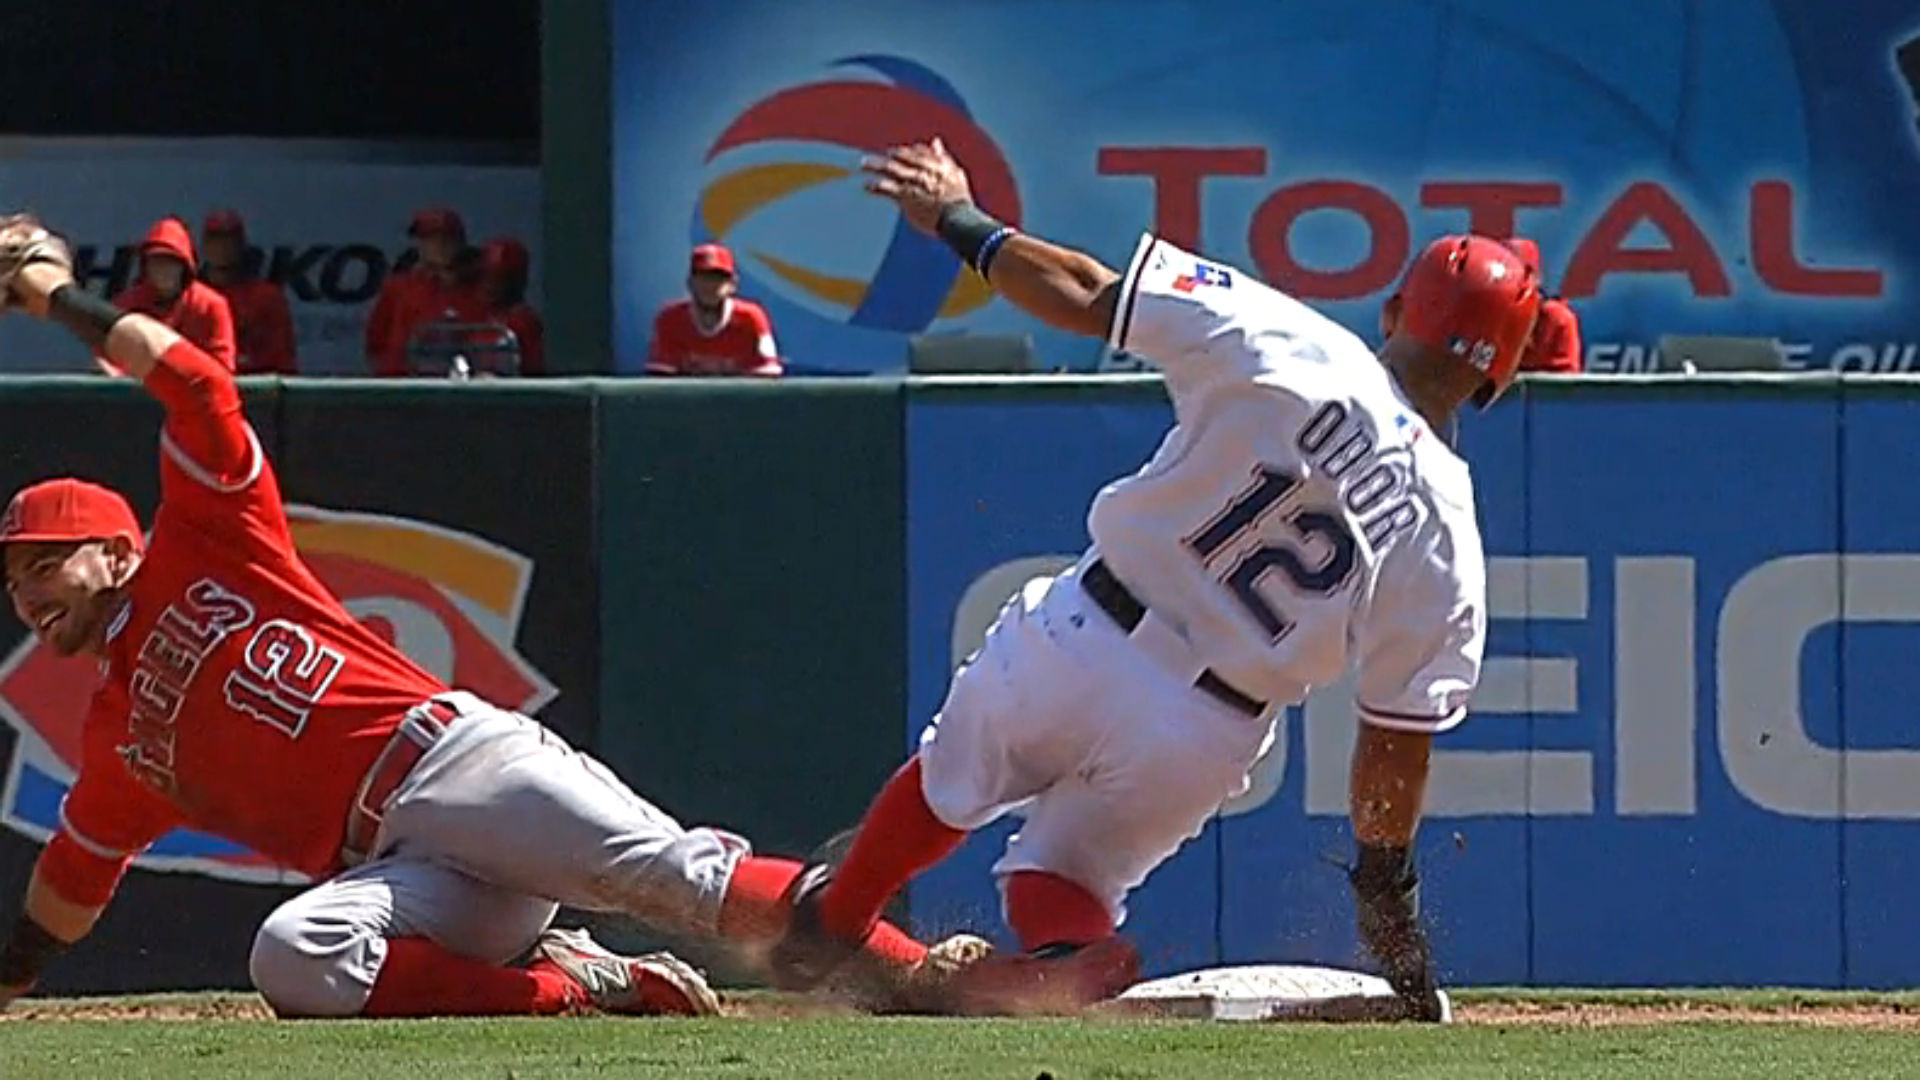 roughned odor spikes legs of giavoltella 2016